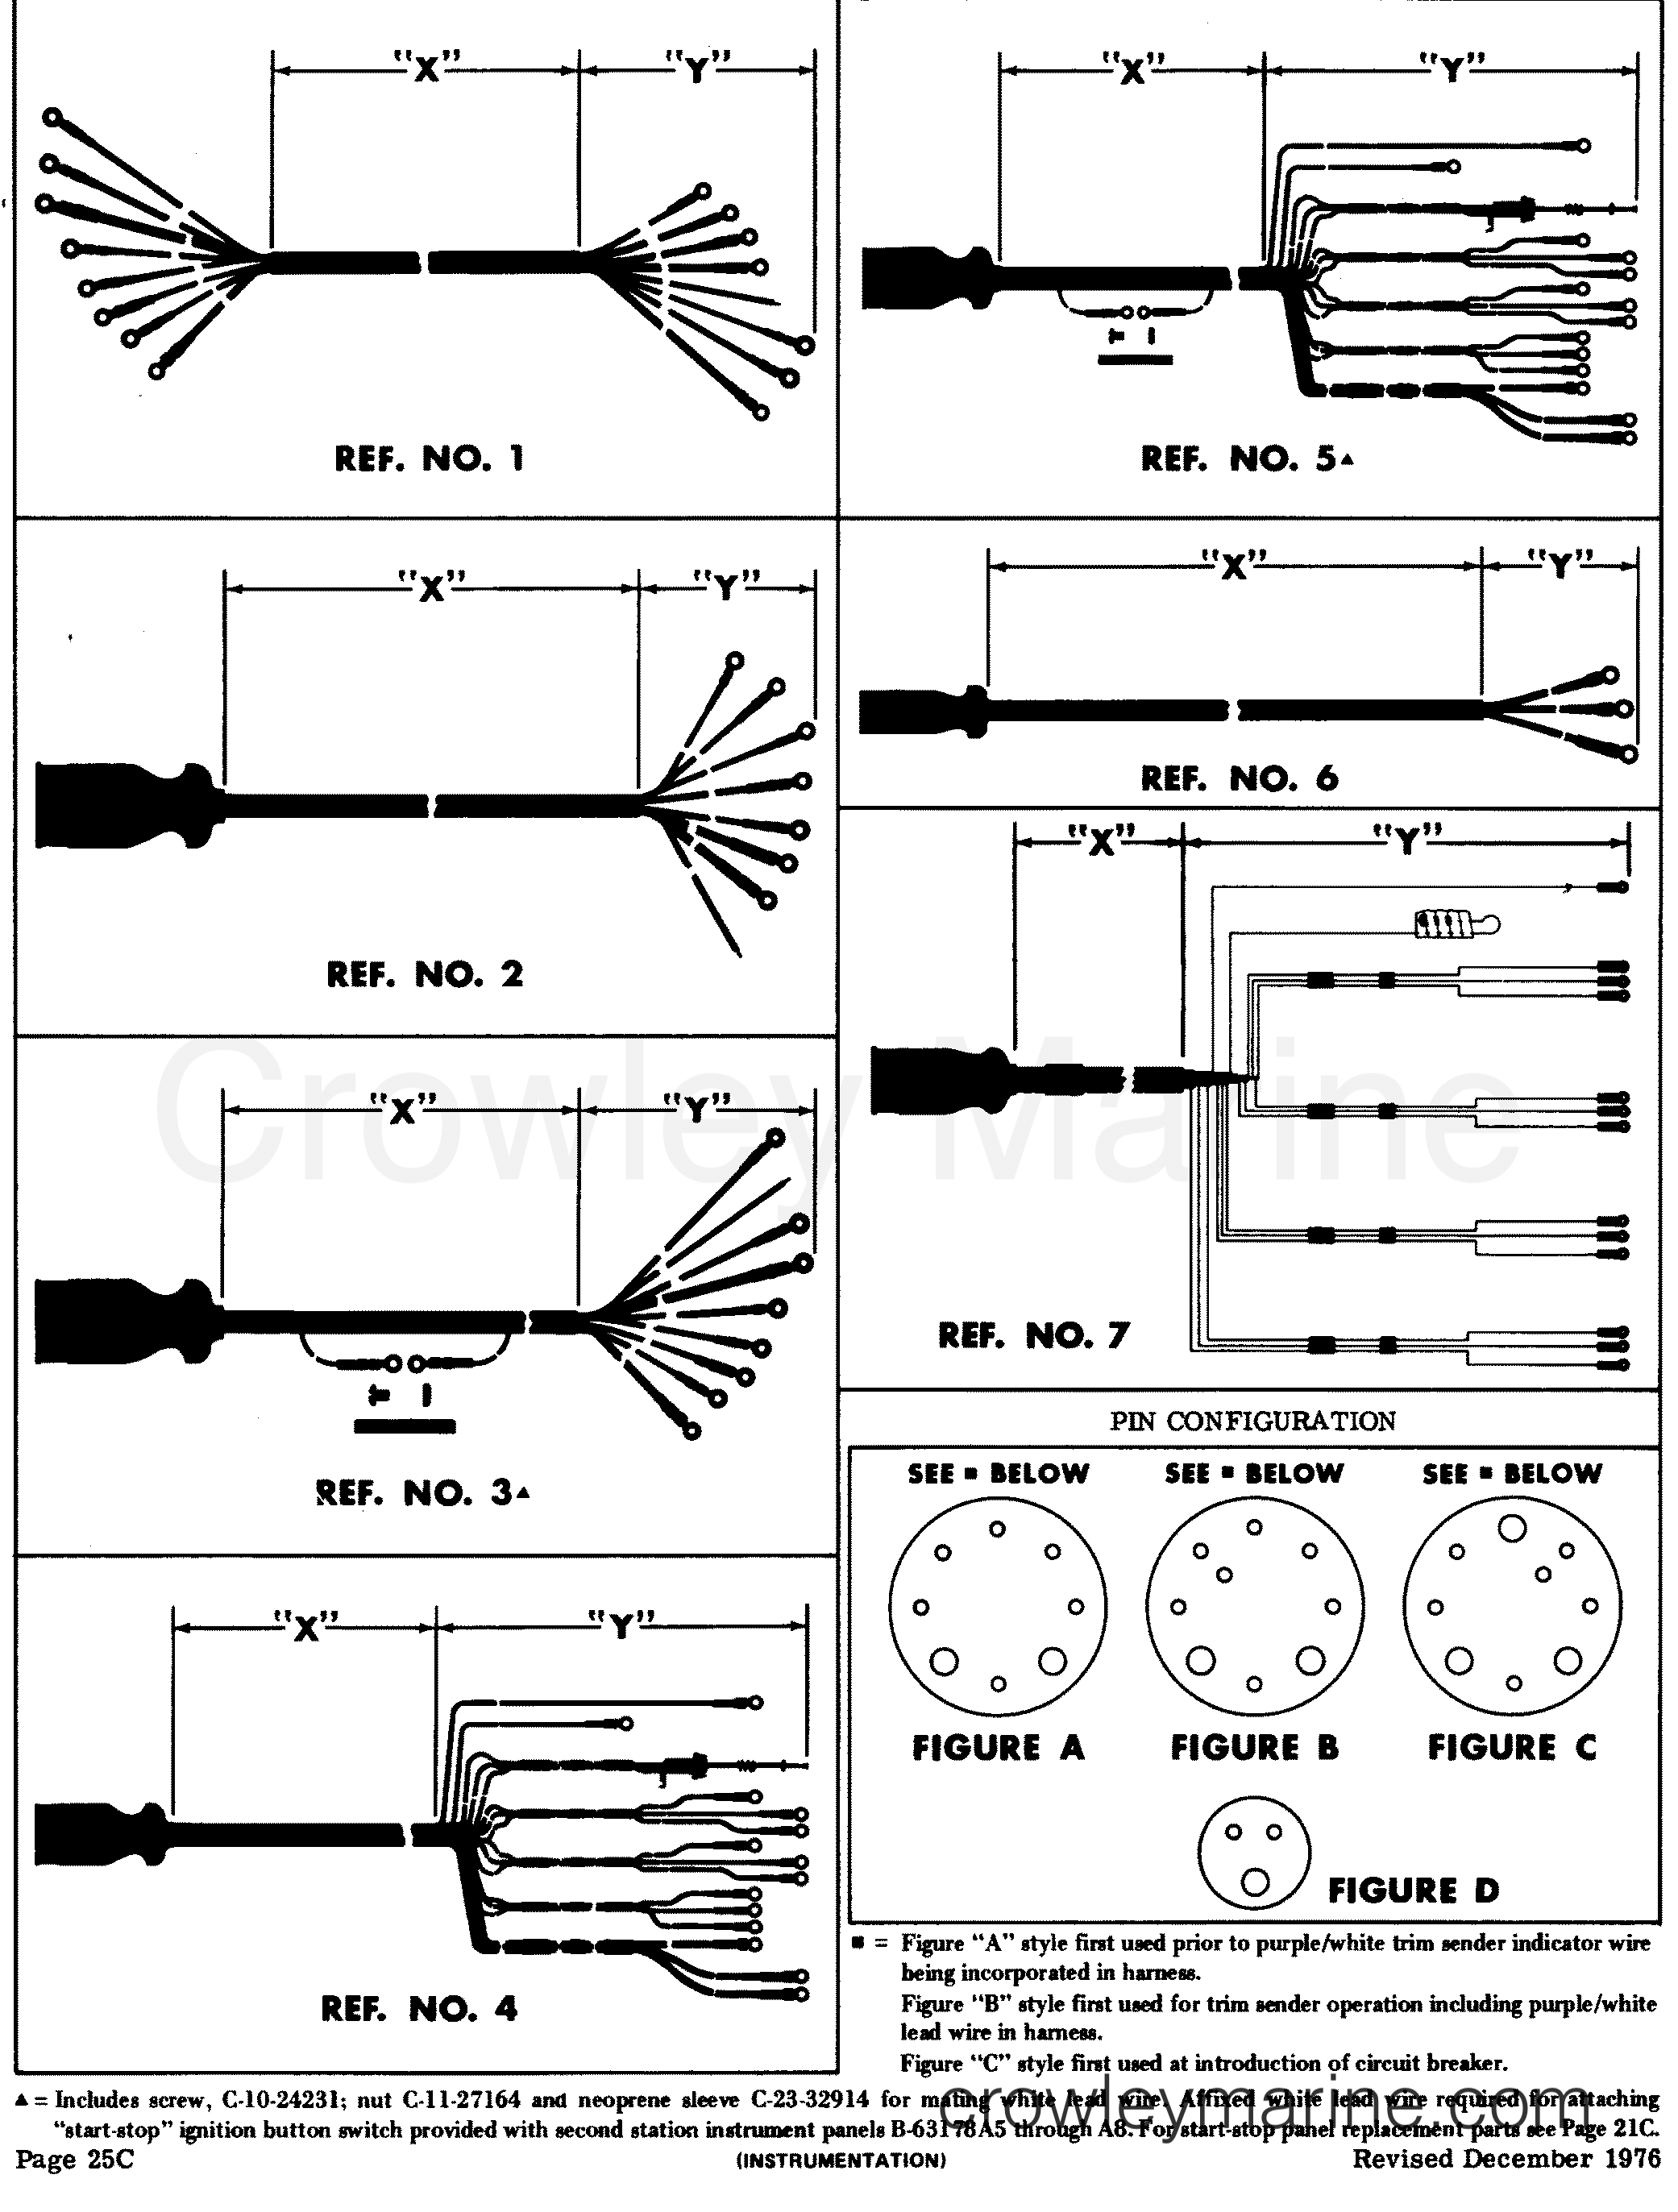 14 Gauge Wiring Diagram Auto Electrical Related With